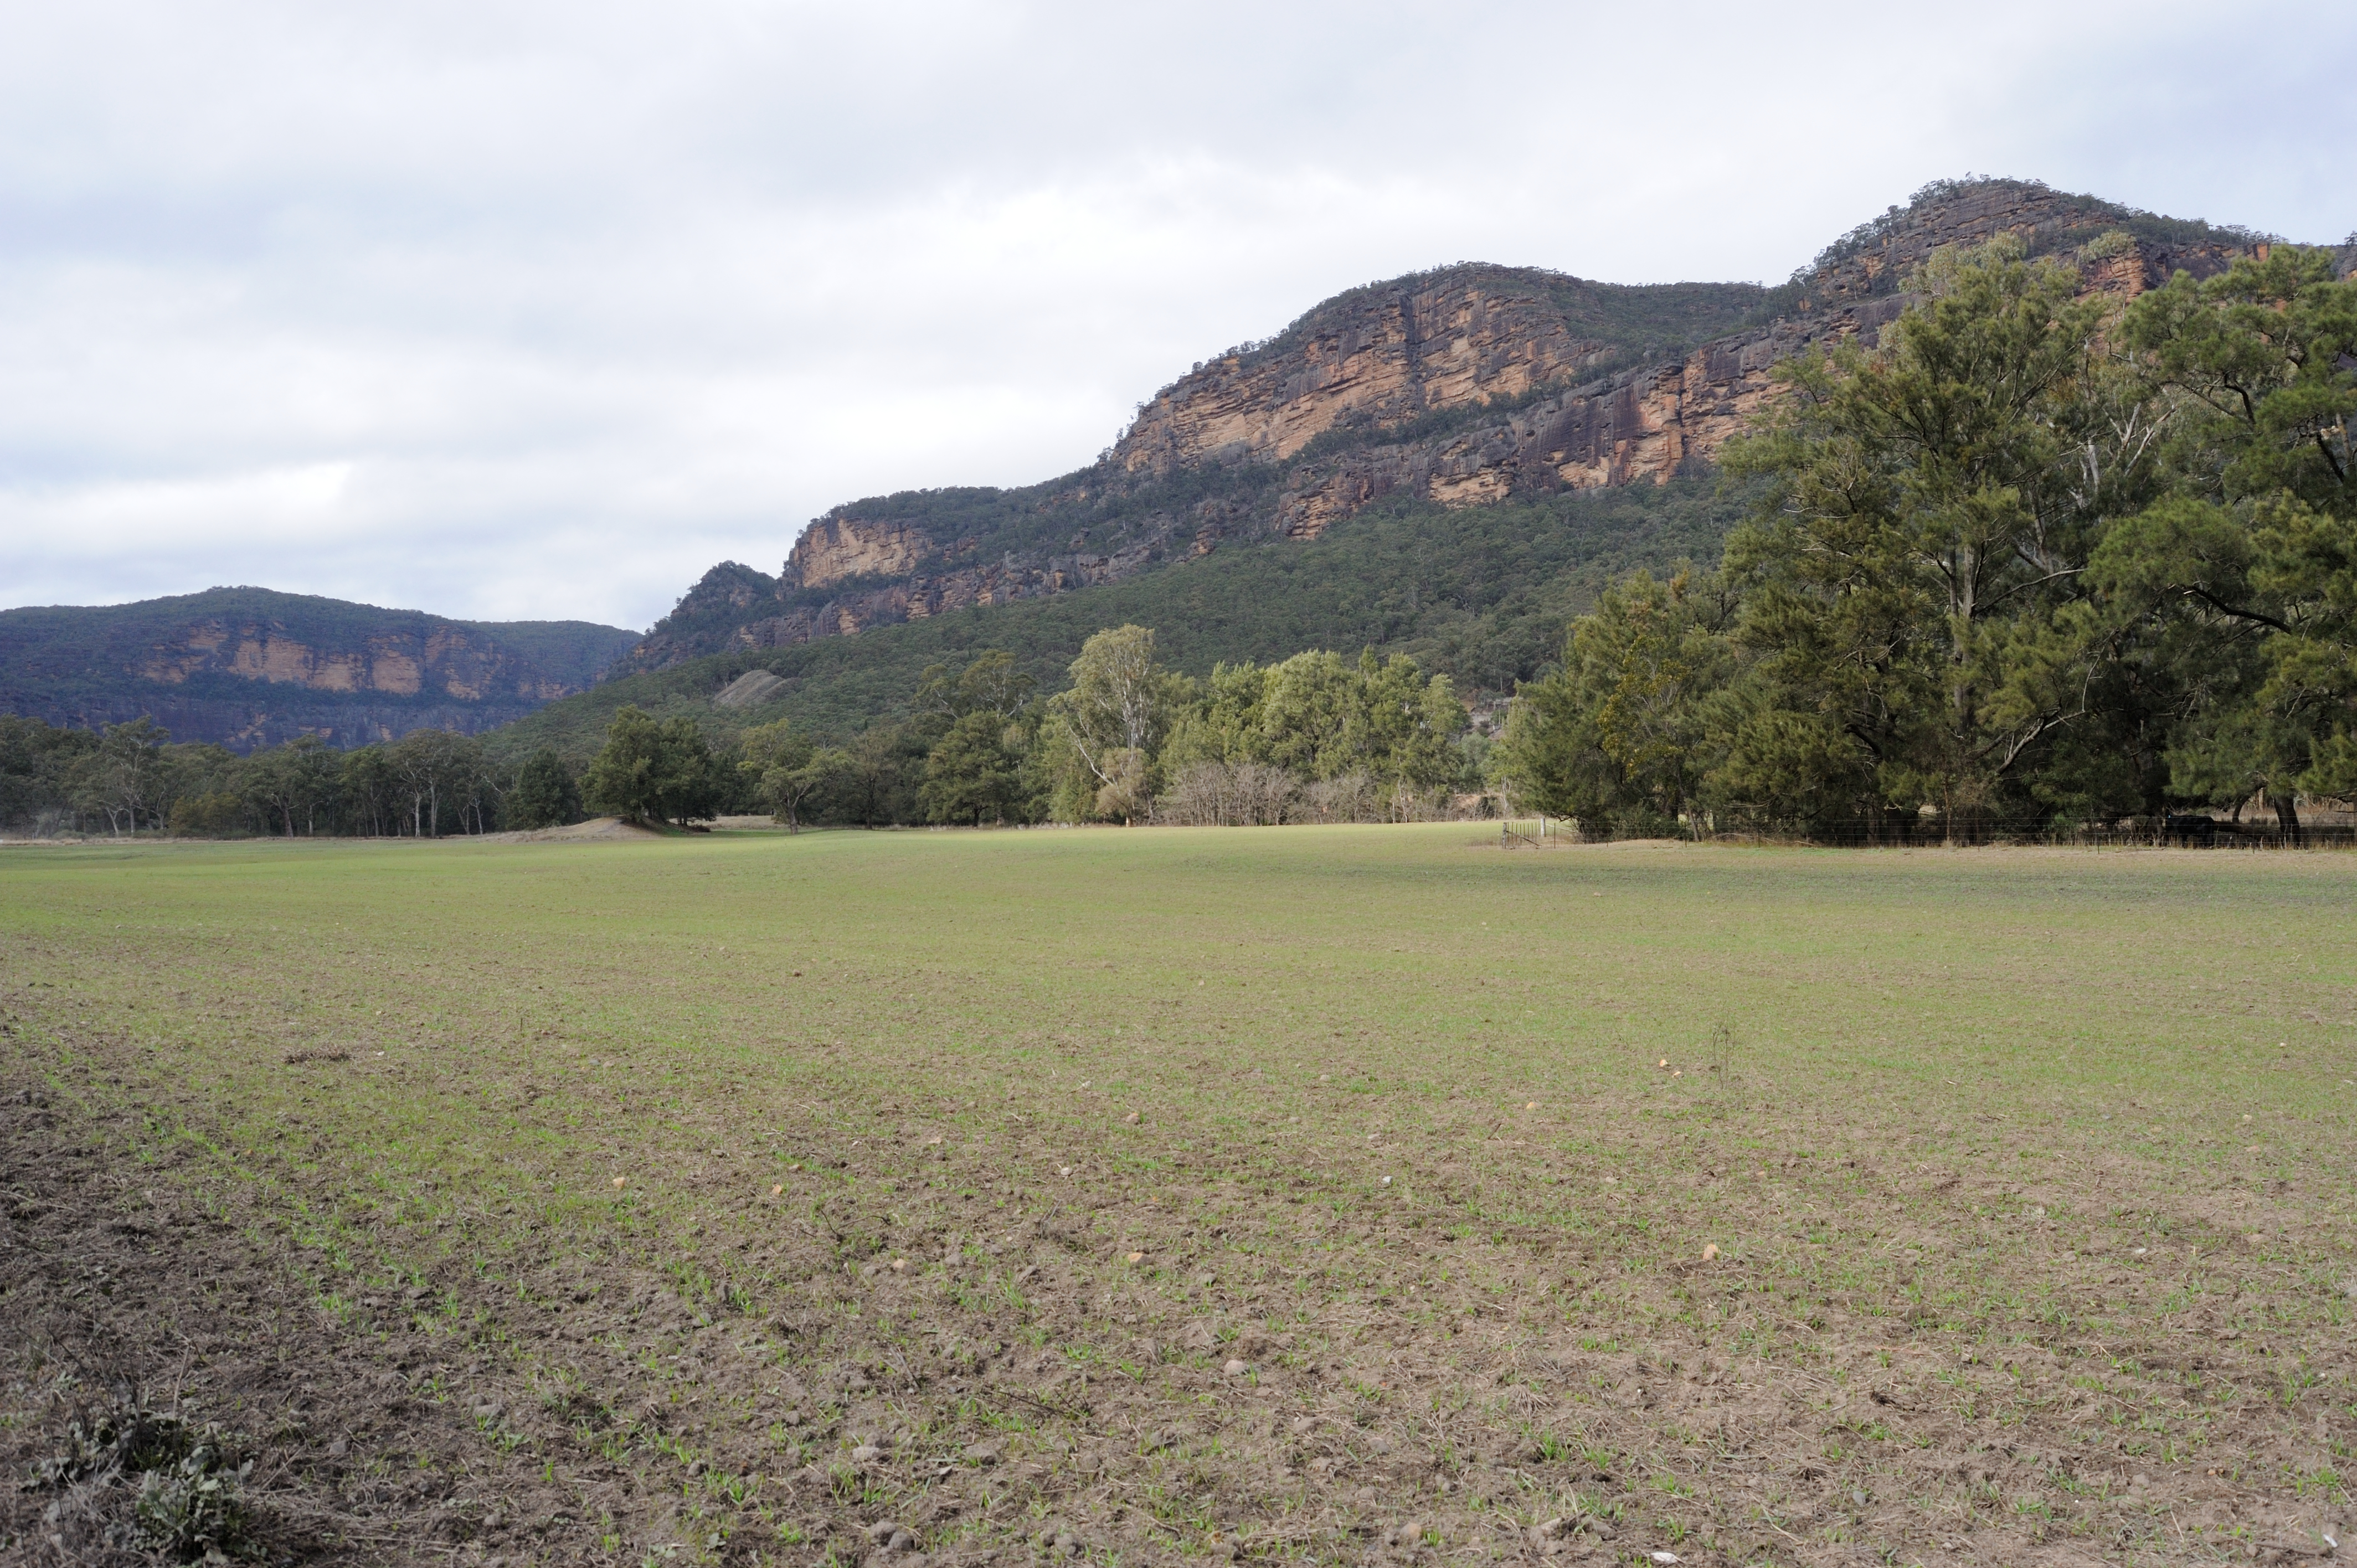 Near Coorongooba Campground - Wollemi National Park